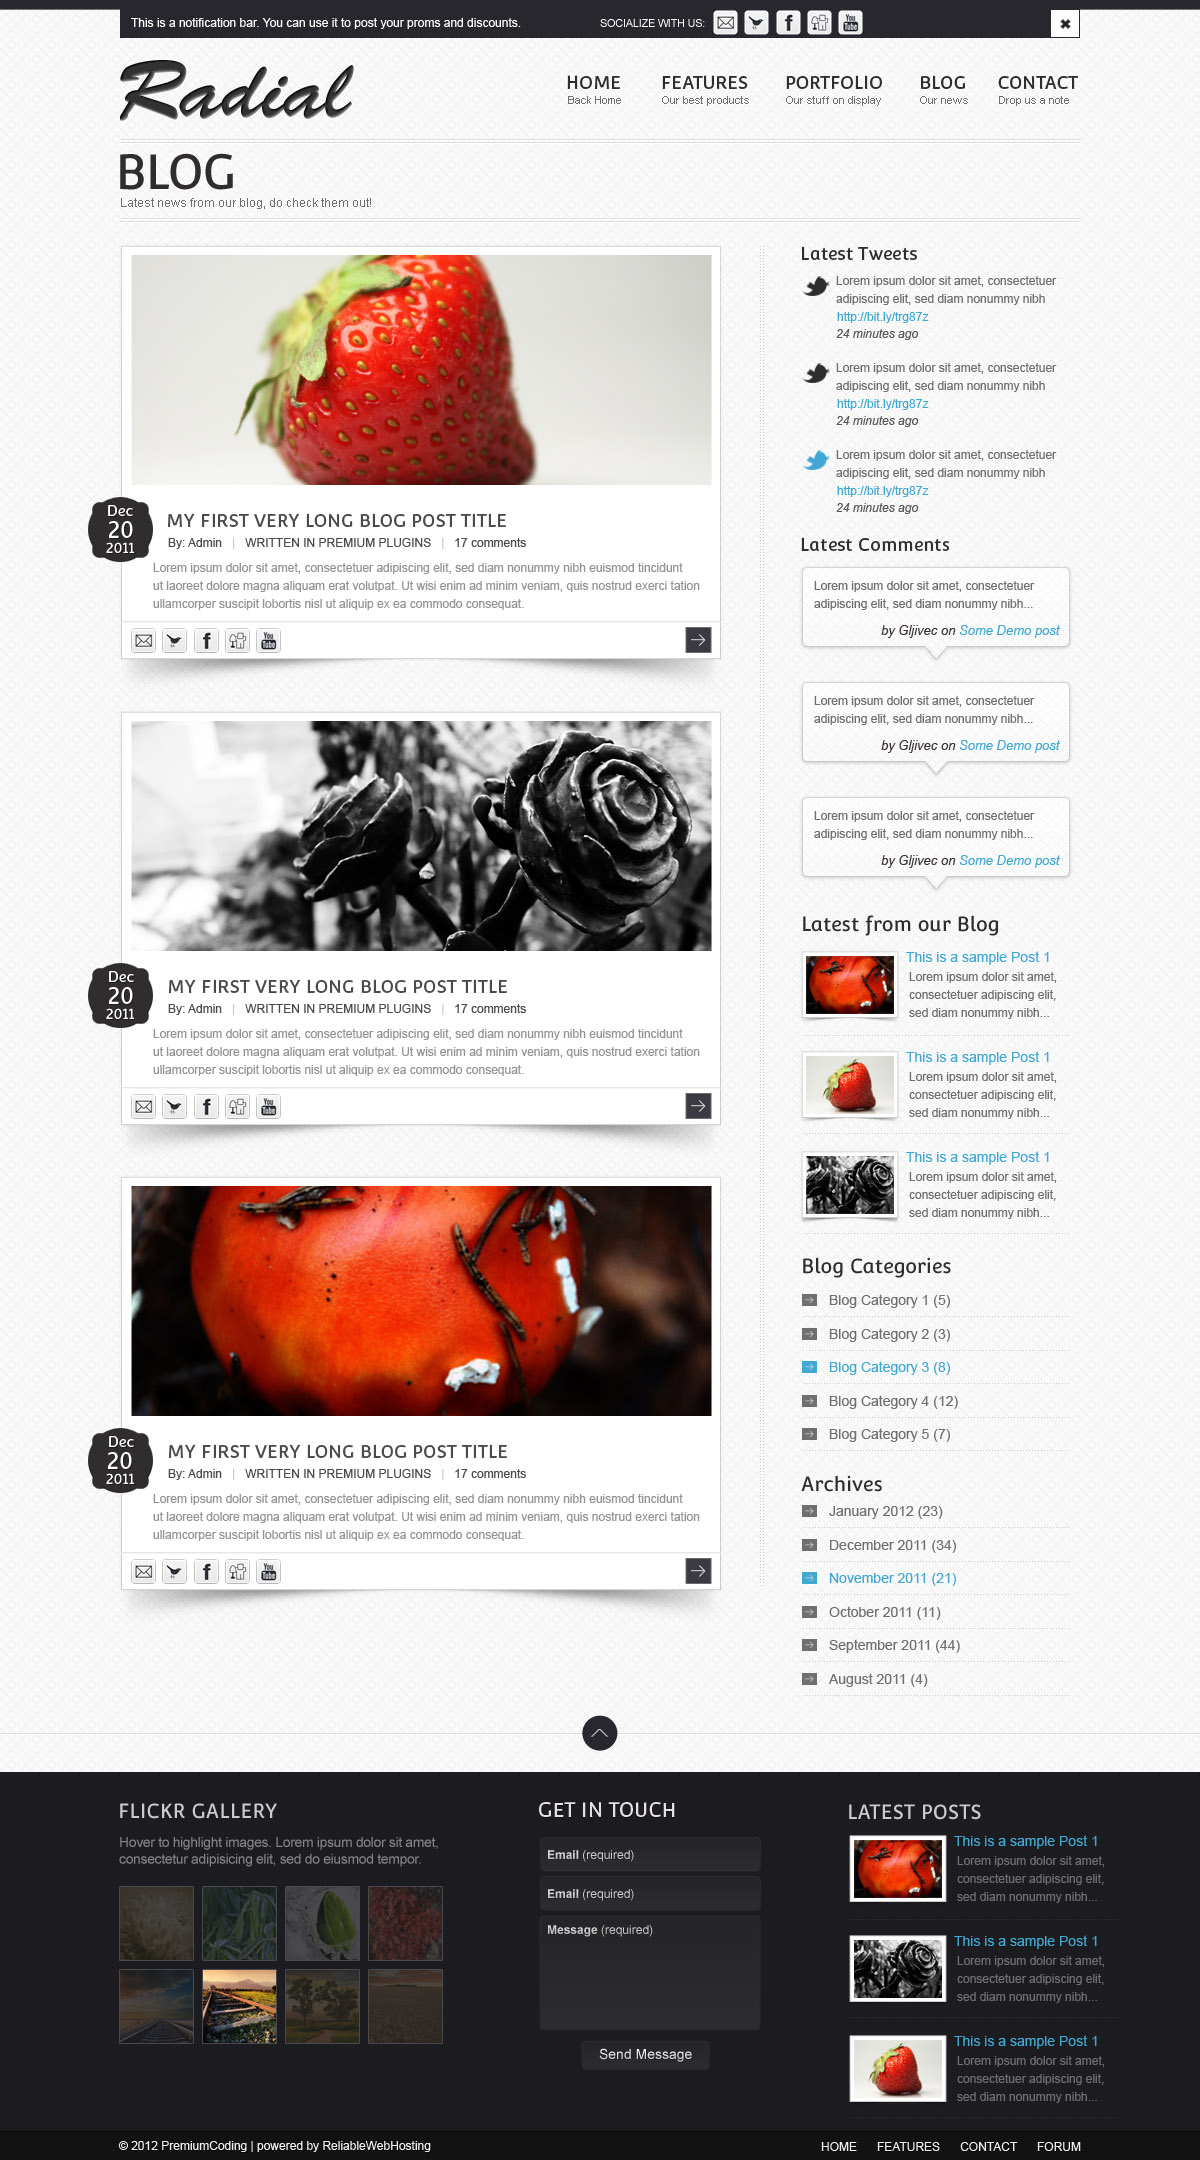 radial-website-template-blog-psd-preview.jpg